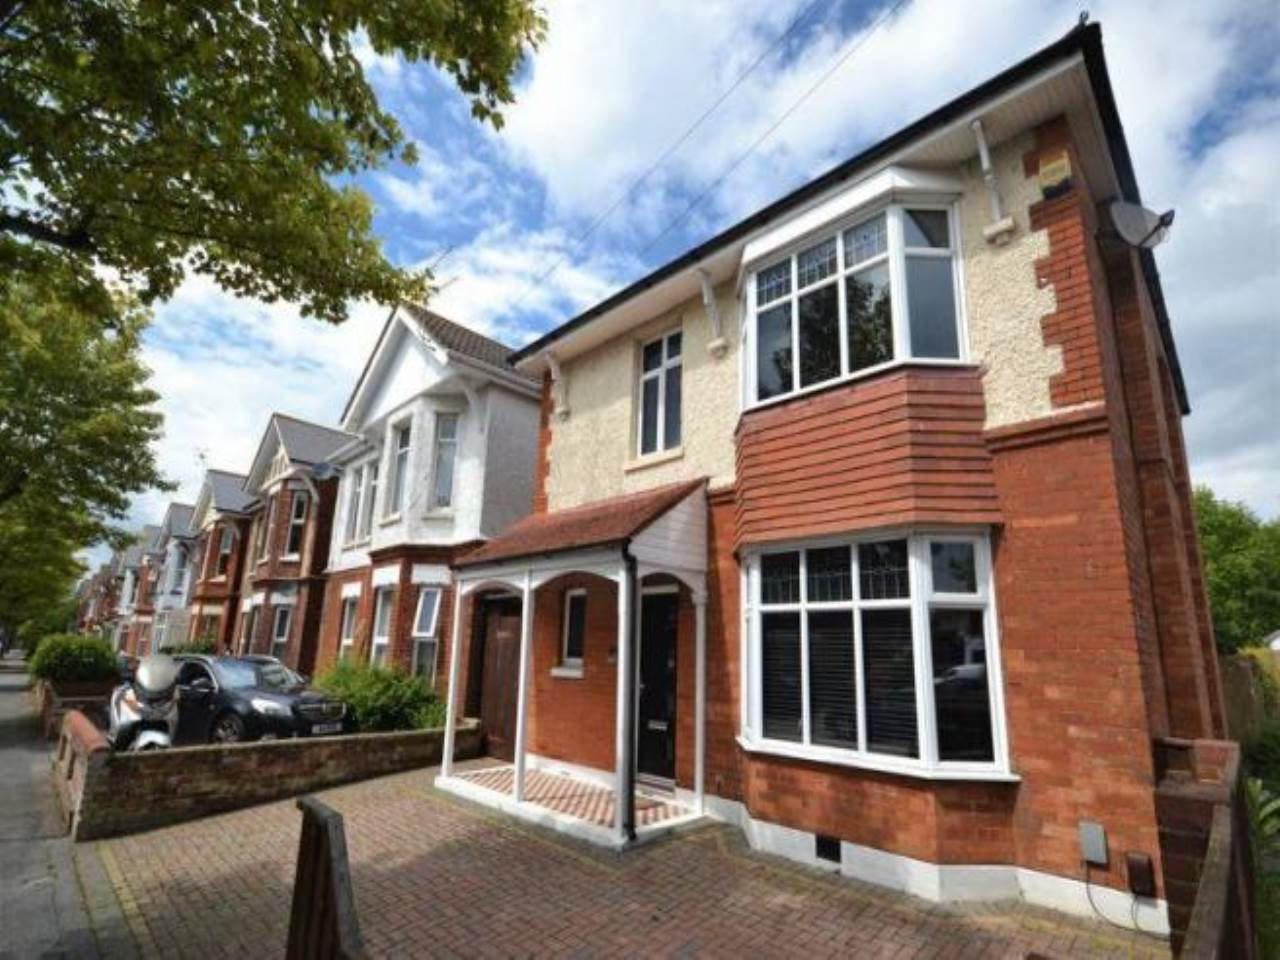 4 bed house for sale in Cowper Road, Moordown 18